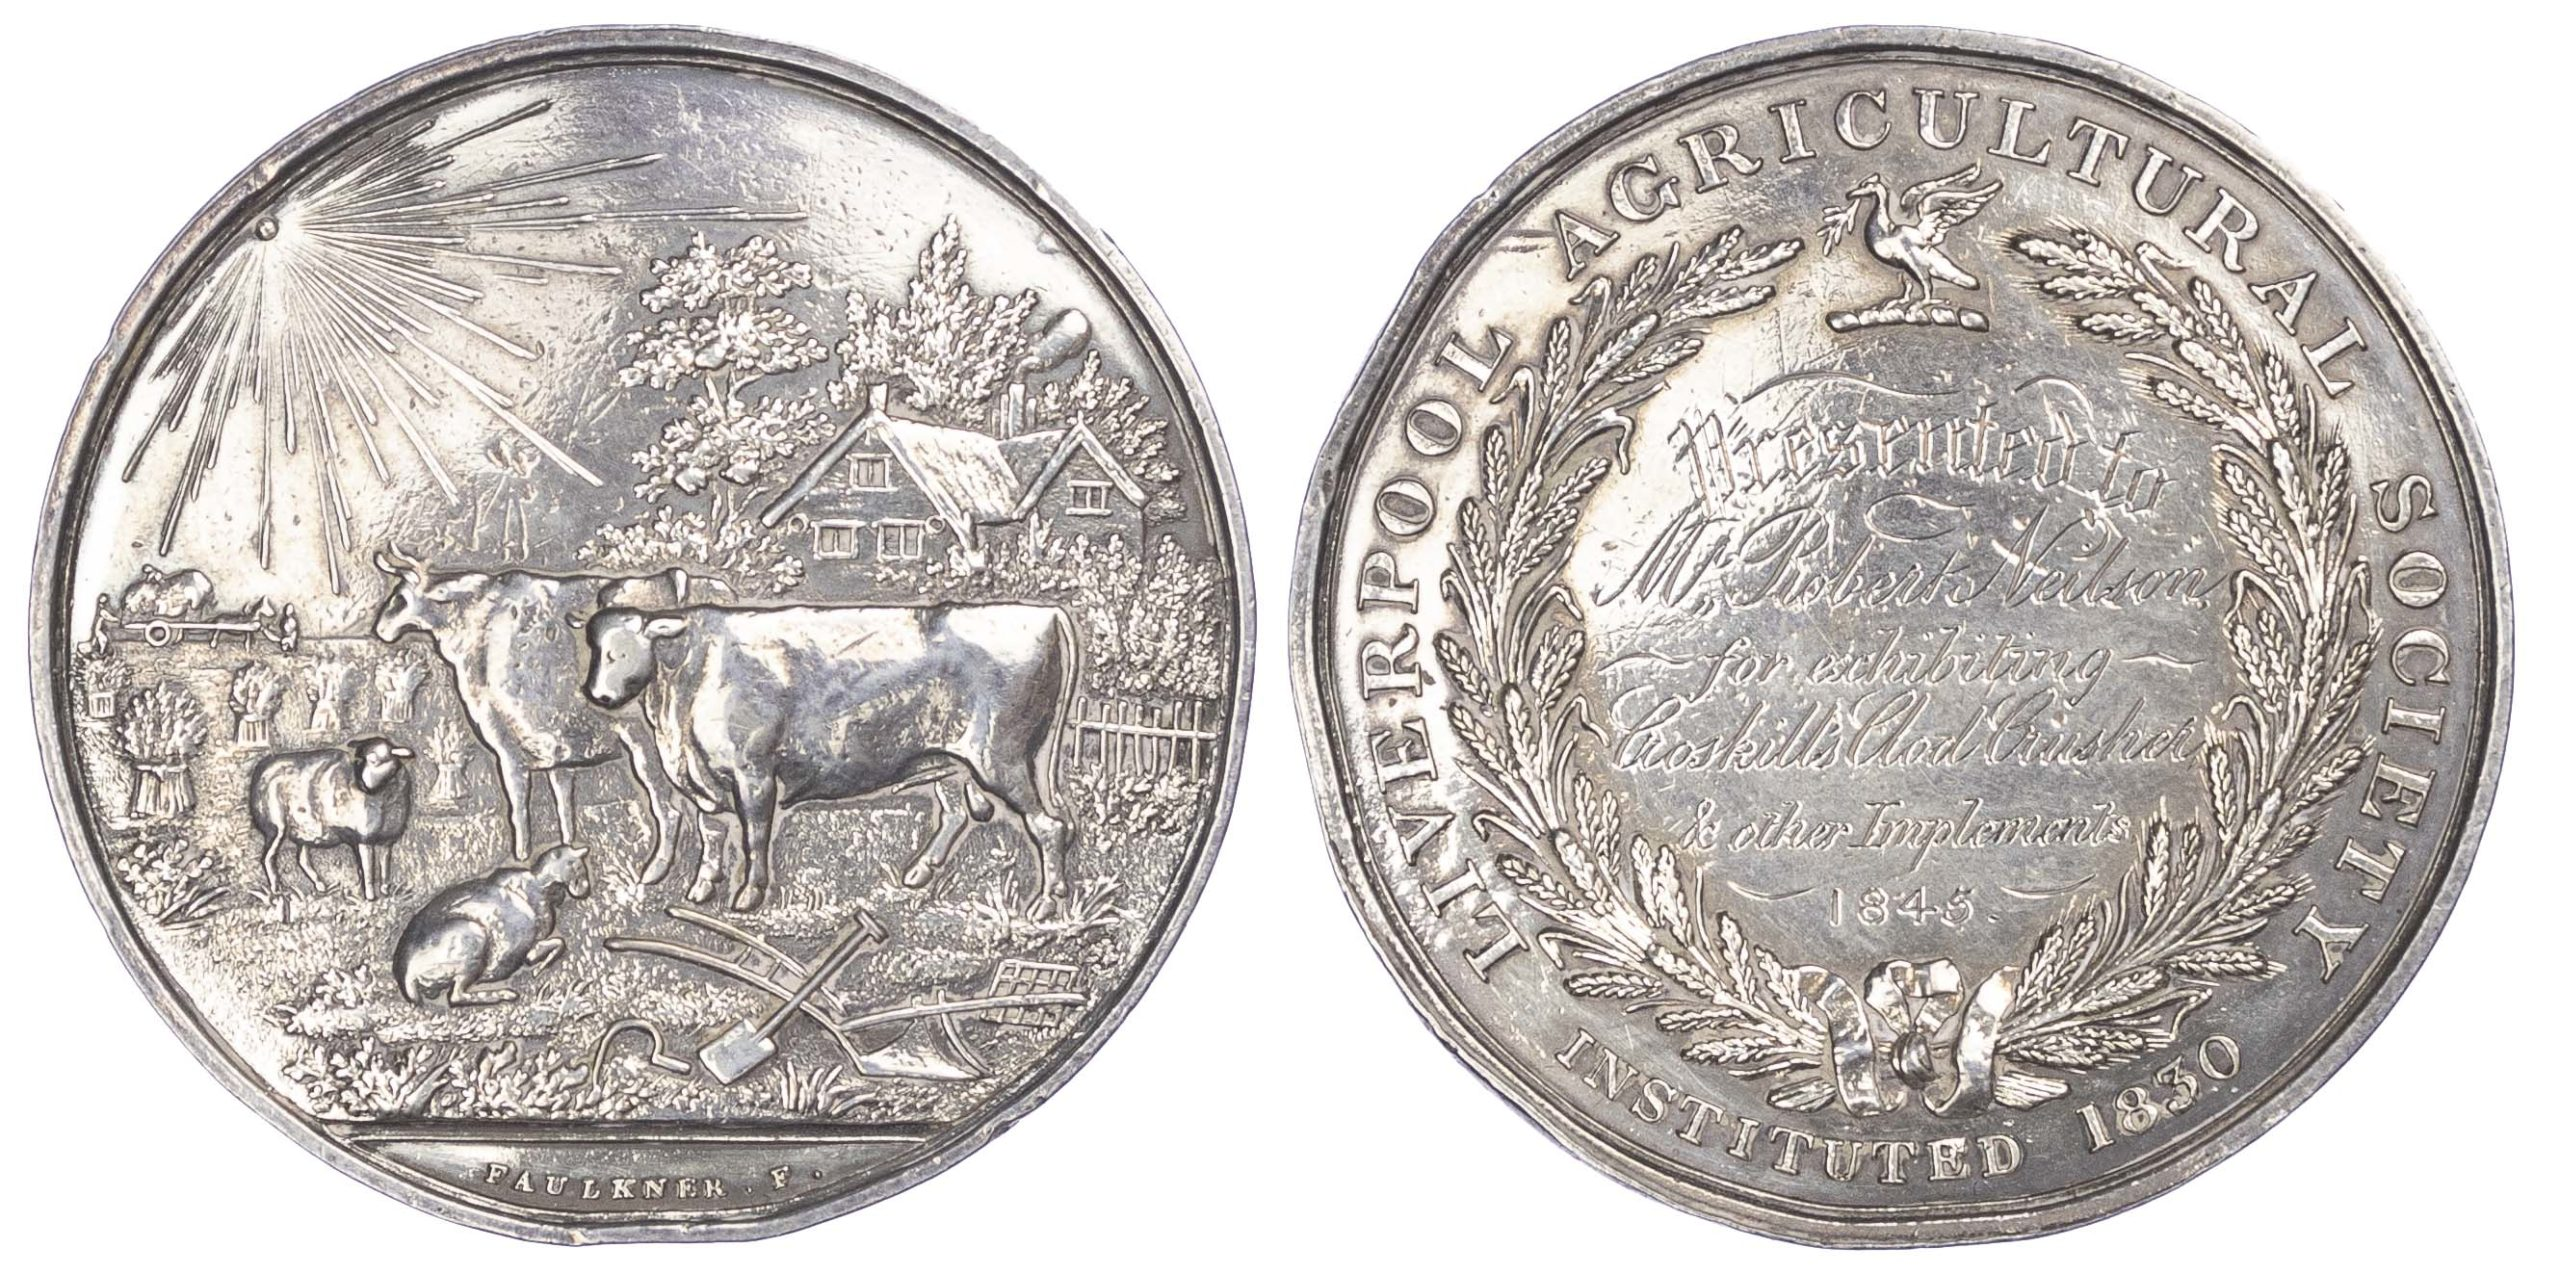 Agricultural prize medal, Liverpool Agricultural Society silver medal 1845